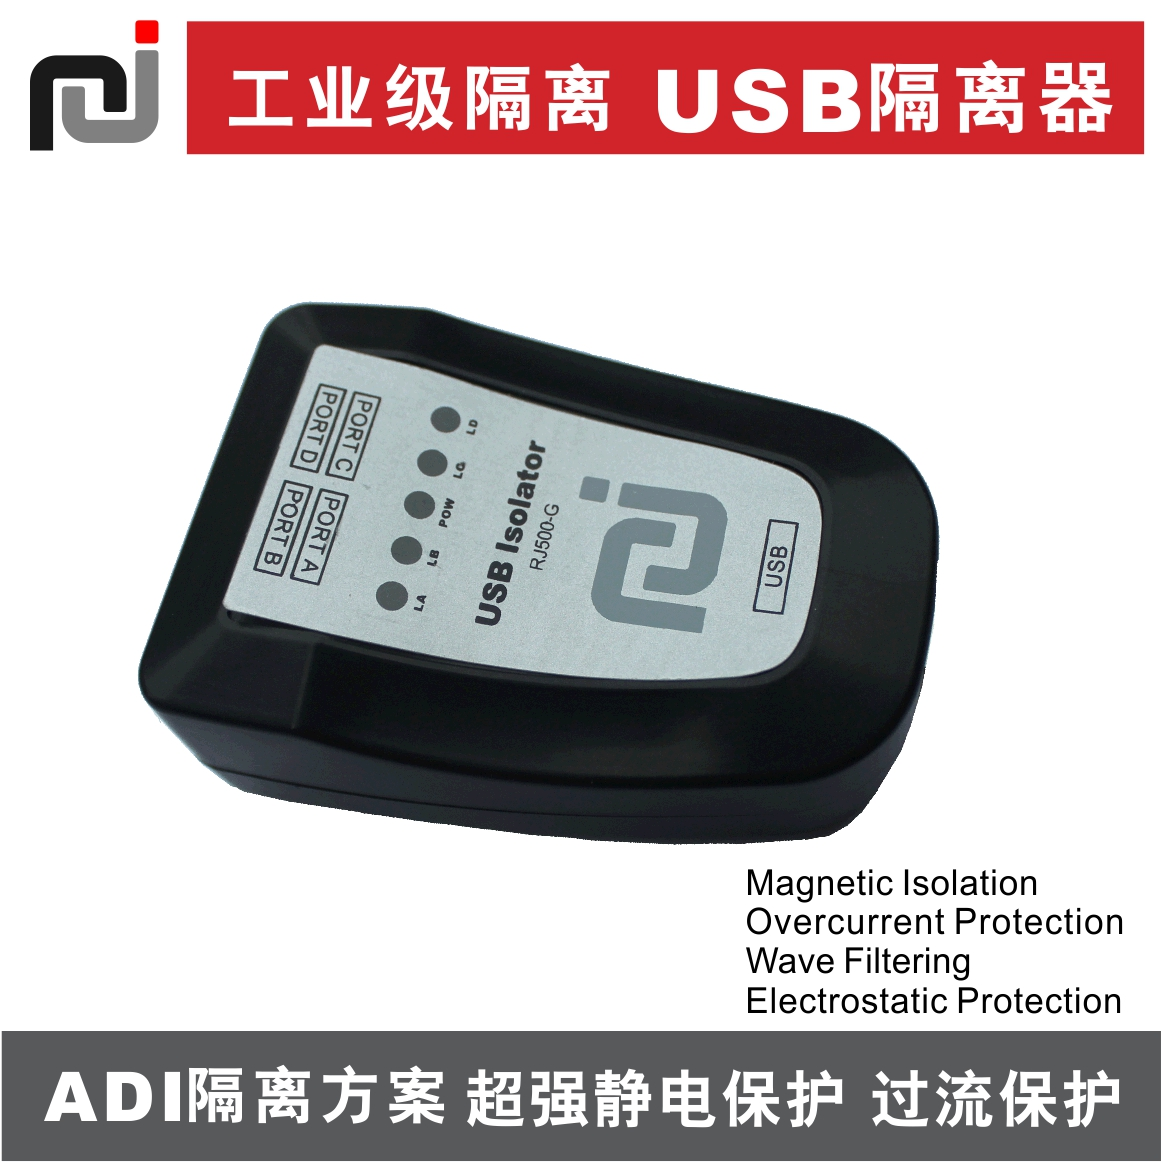 USB Isolator / Digital Isolator, /usb to USB, Isolated /usb Hub / Signal Power, Audio Isolation<br>